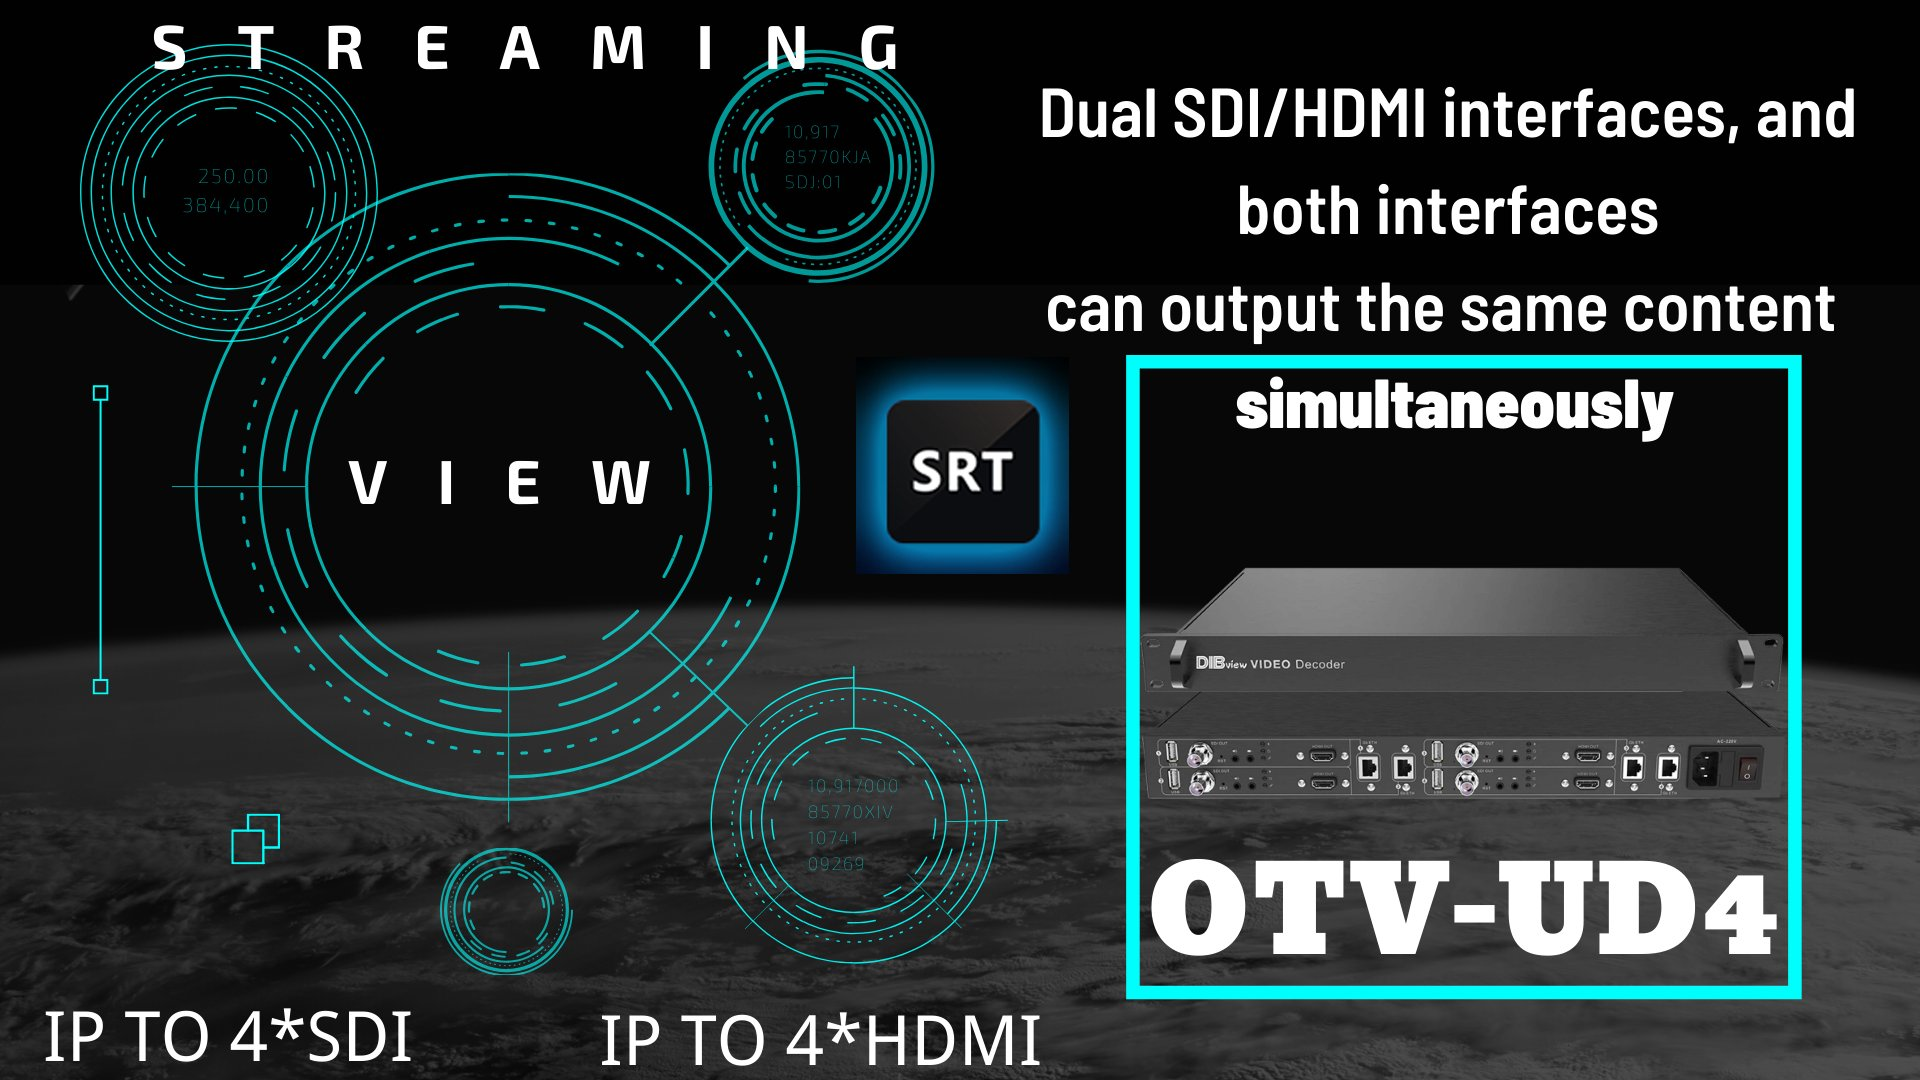 OTV-UD4 Multi-Channel SDI HDMI Media SRT Decoder